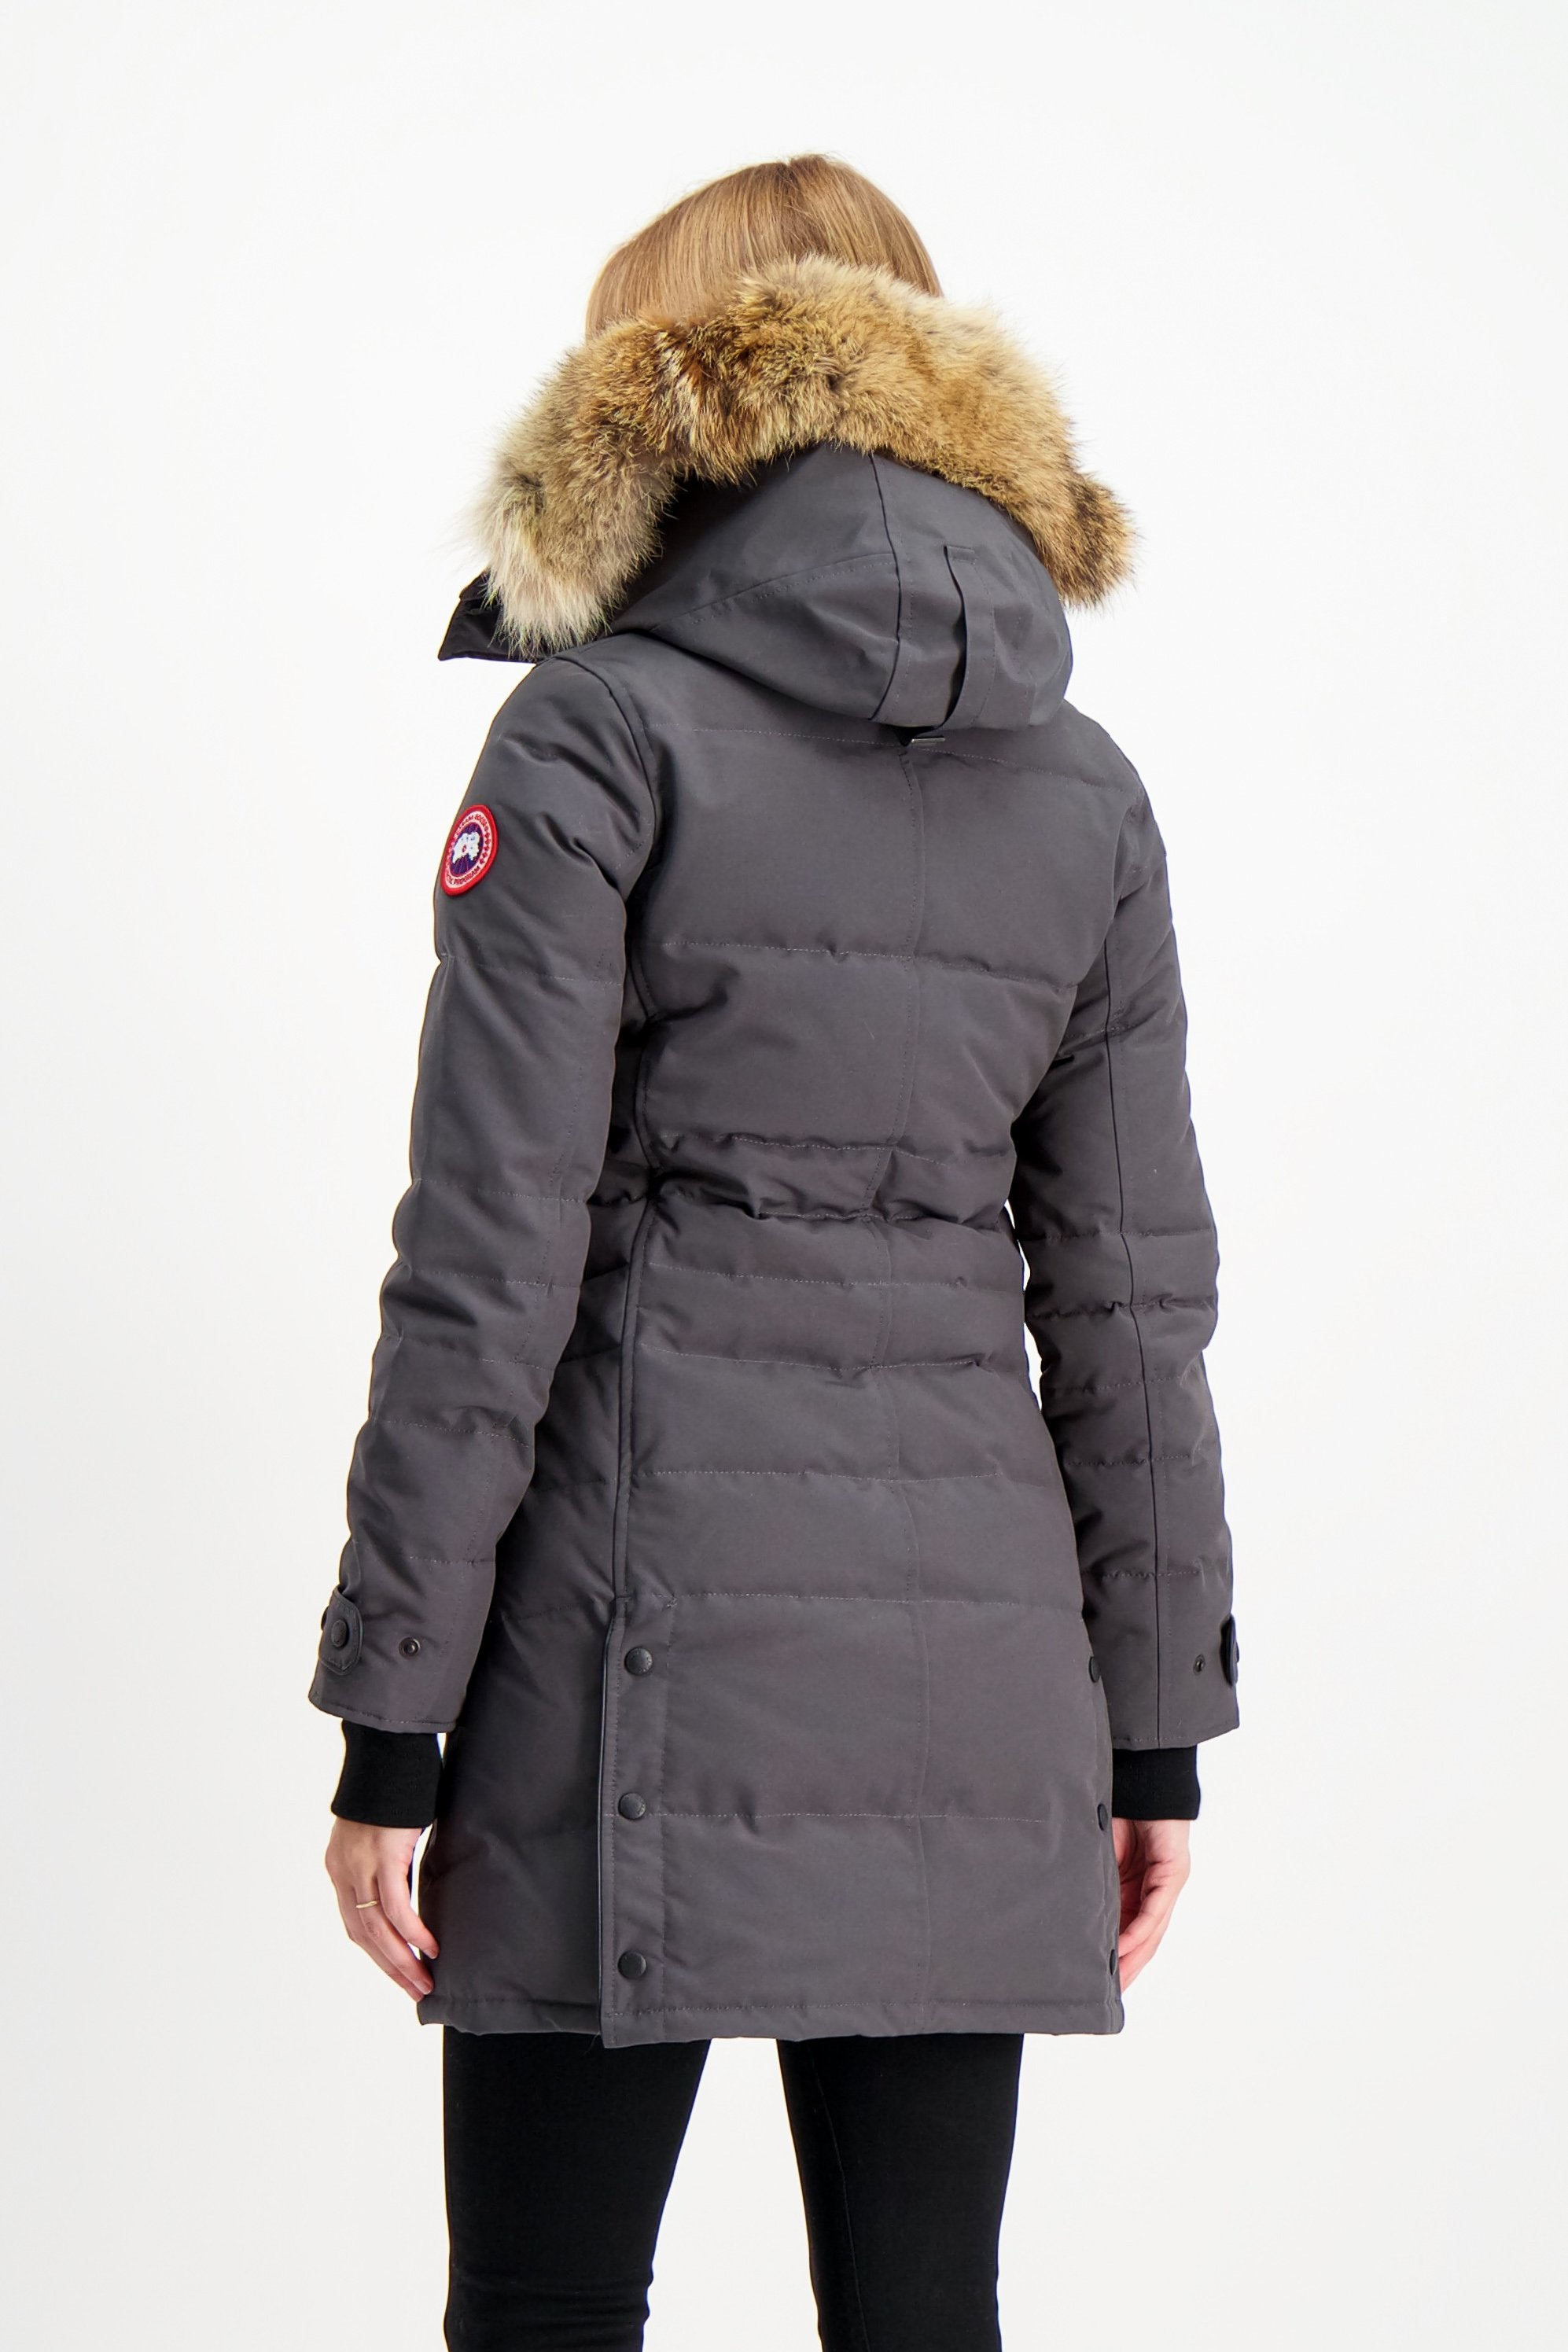 Back Crop Image Of Model Wearing Canada Goose Women's Lorette Parka Graphite